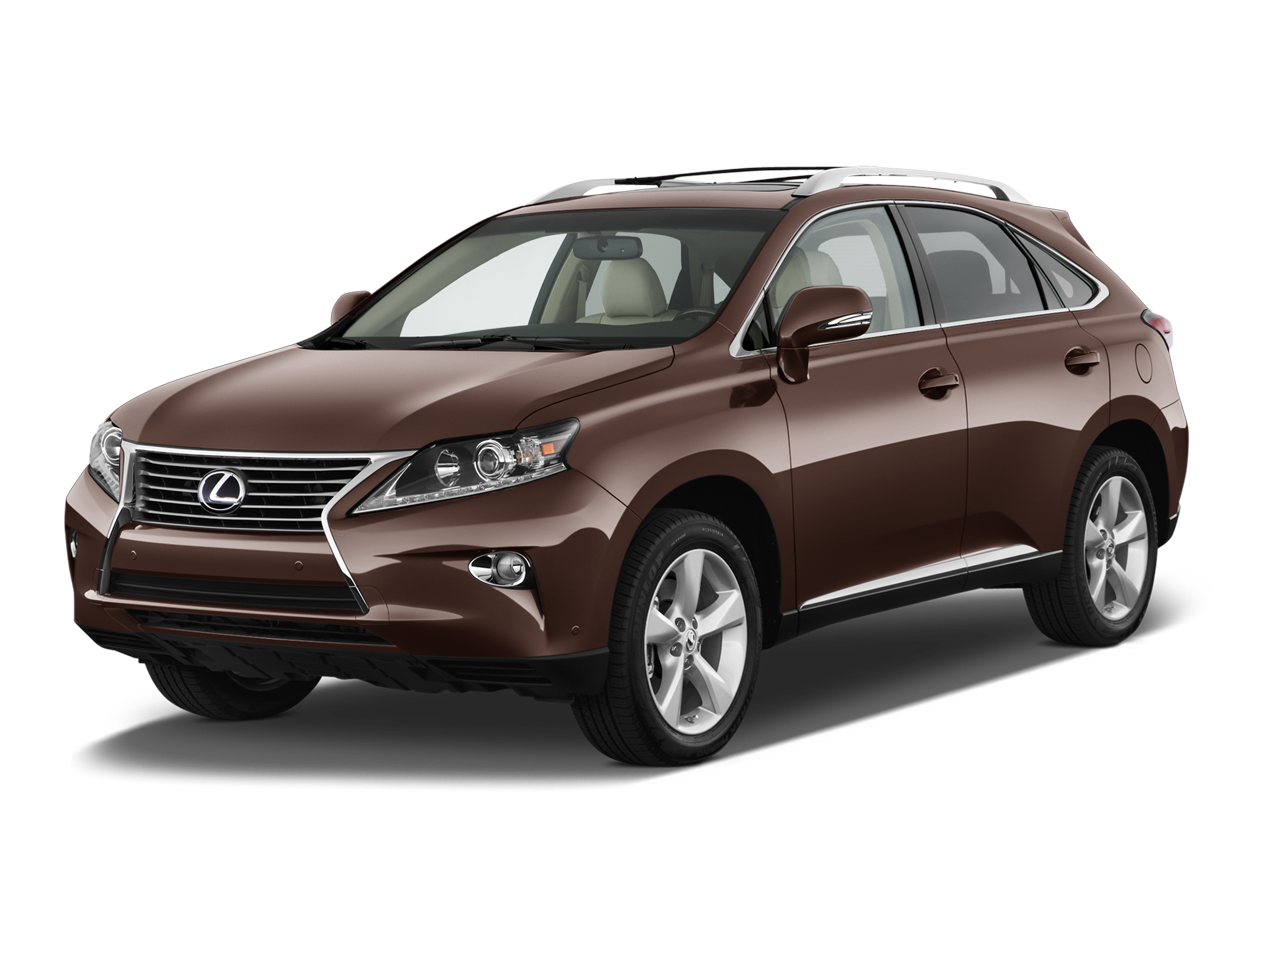 used 2015 lexus rx 350 350 near austin tx nyle maxwell family of dealerships. Black Bedroom Furniture Sets. Home Design Ideas